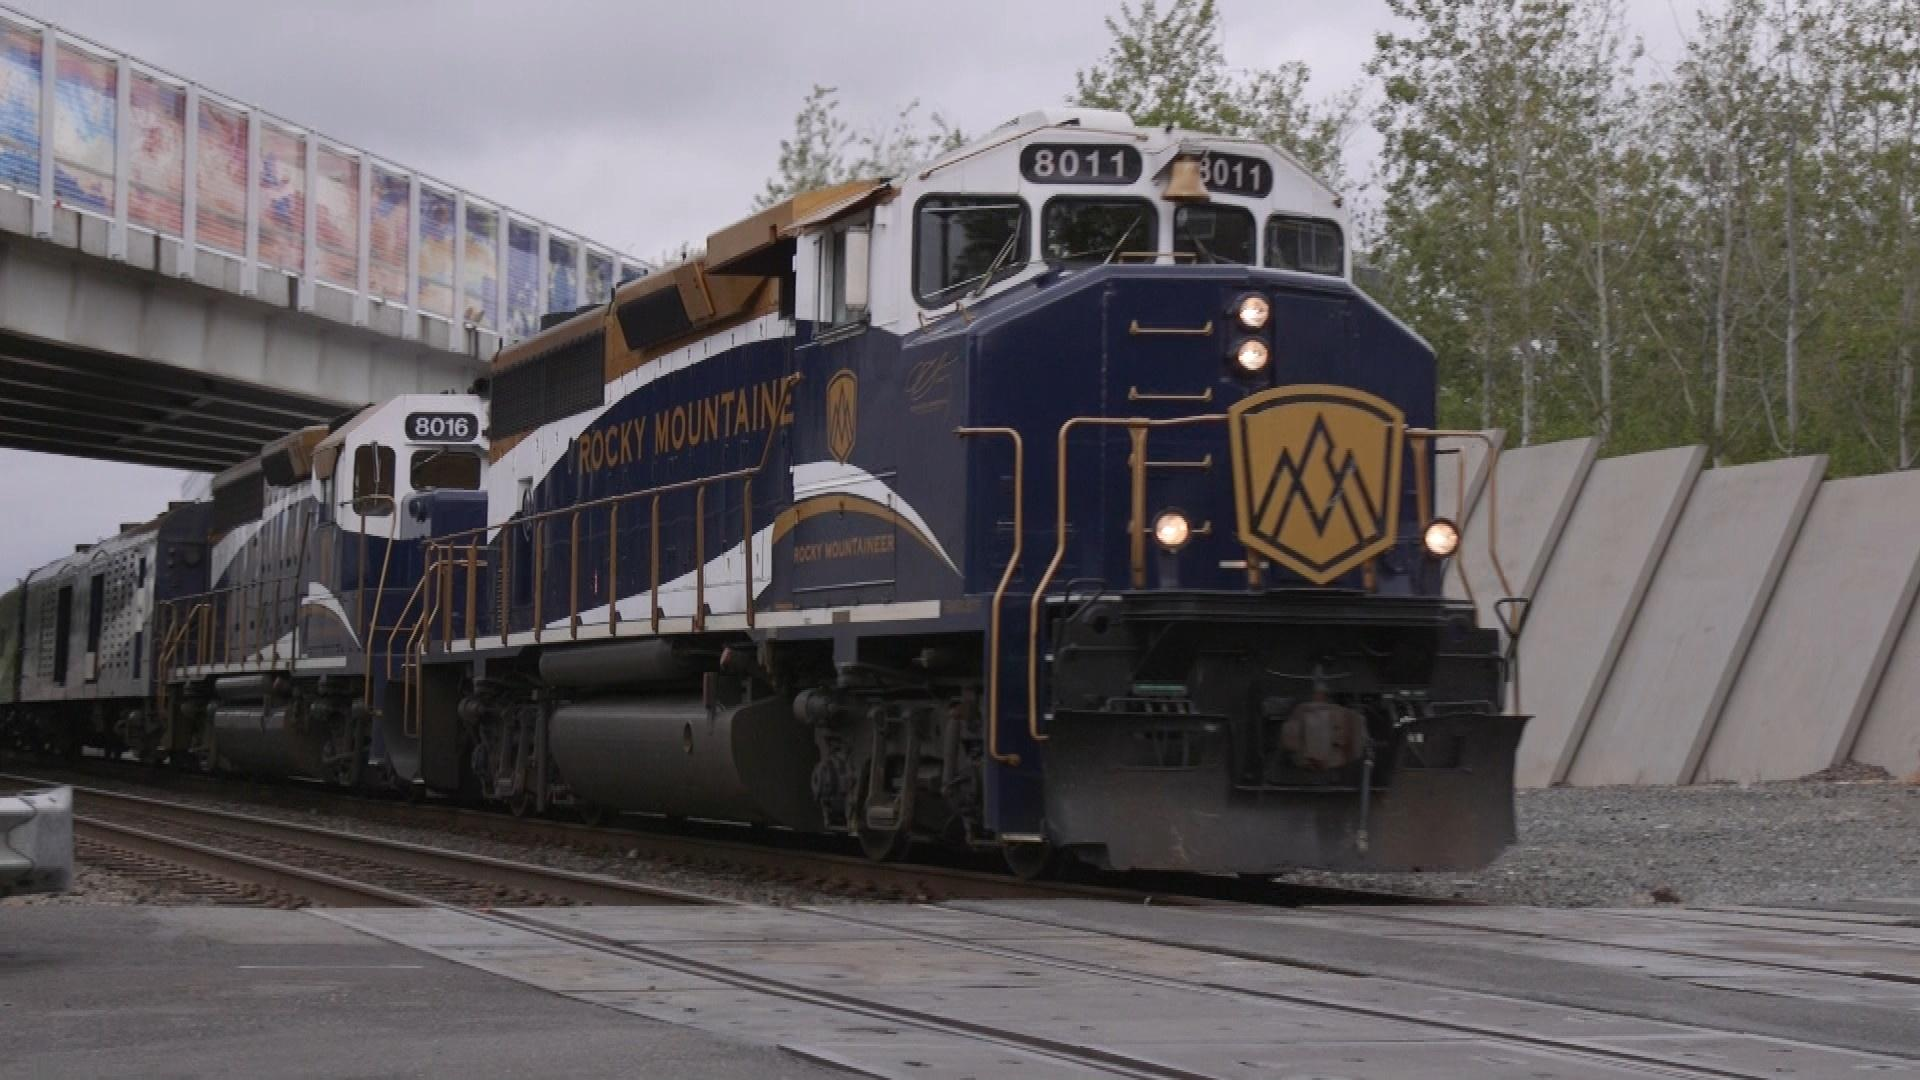 The Rocky Mountaineer engine